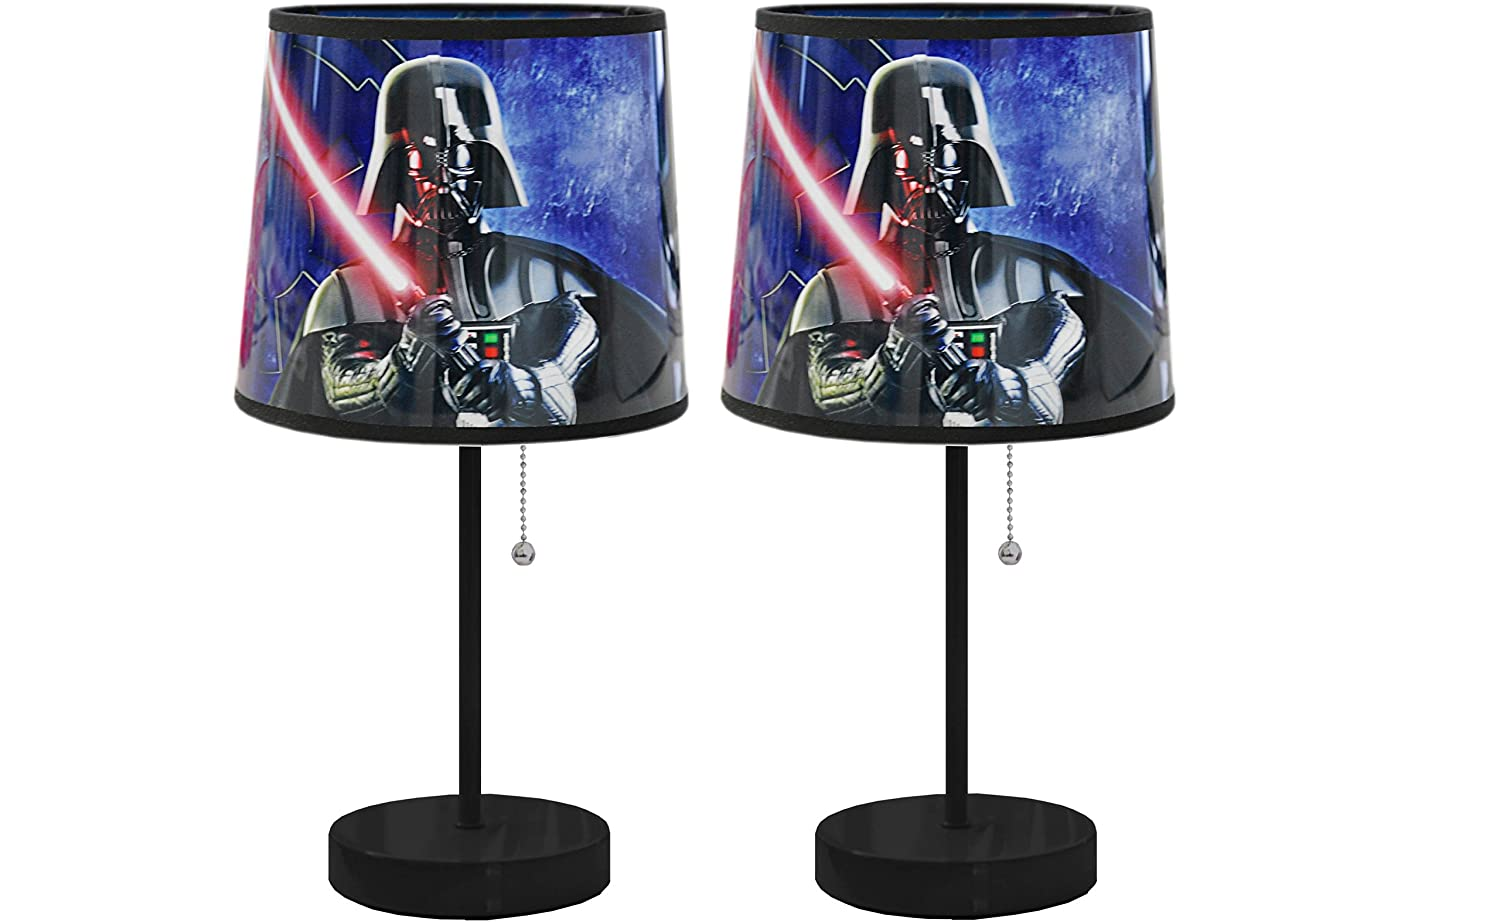 Star Wars Darth Vader lámpara de mesa: Amazon.es: Hogar